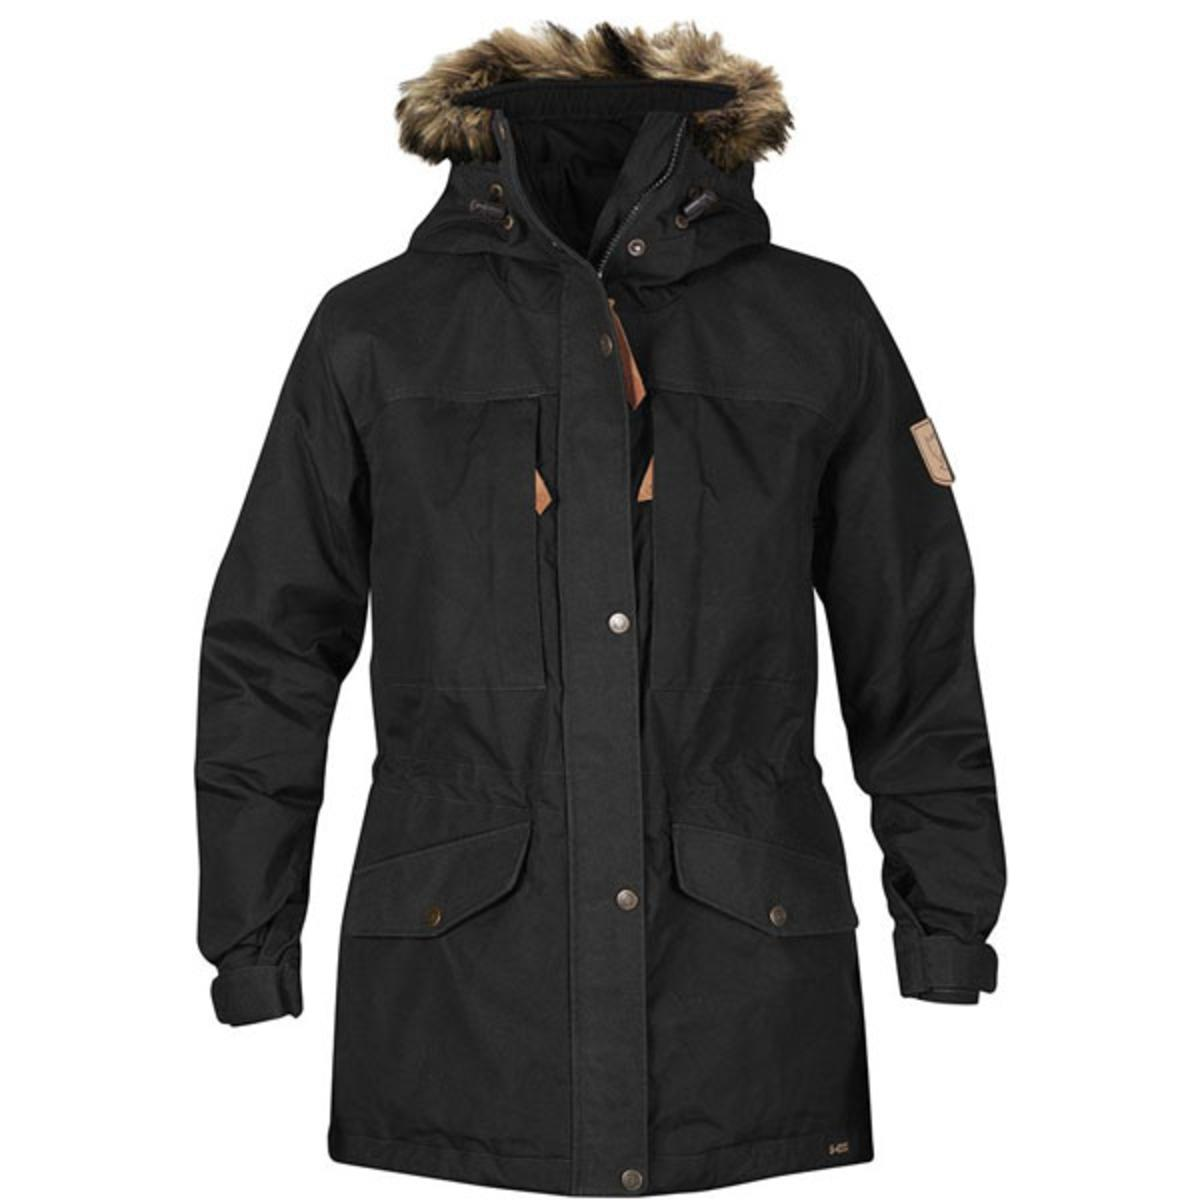 FjallRaven Men's Singi Winter Jacket The Warming Store